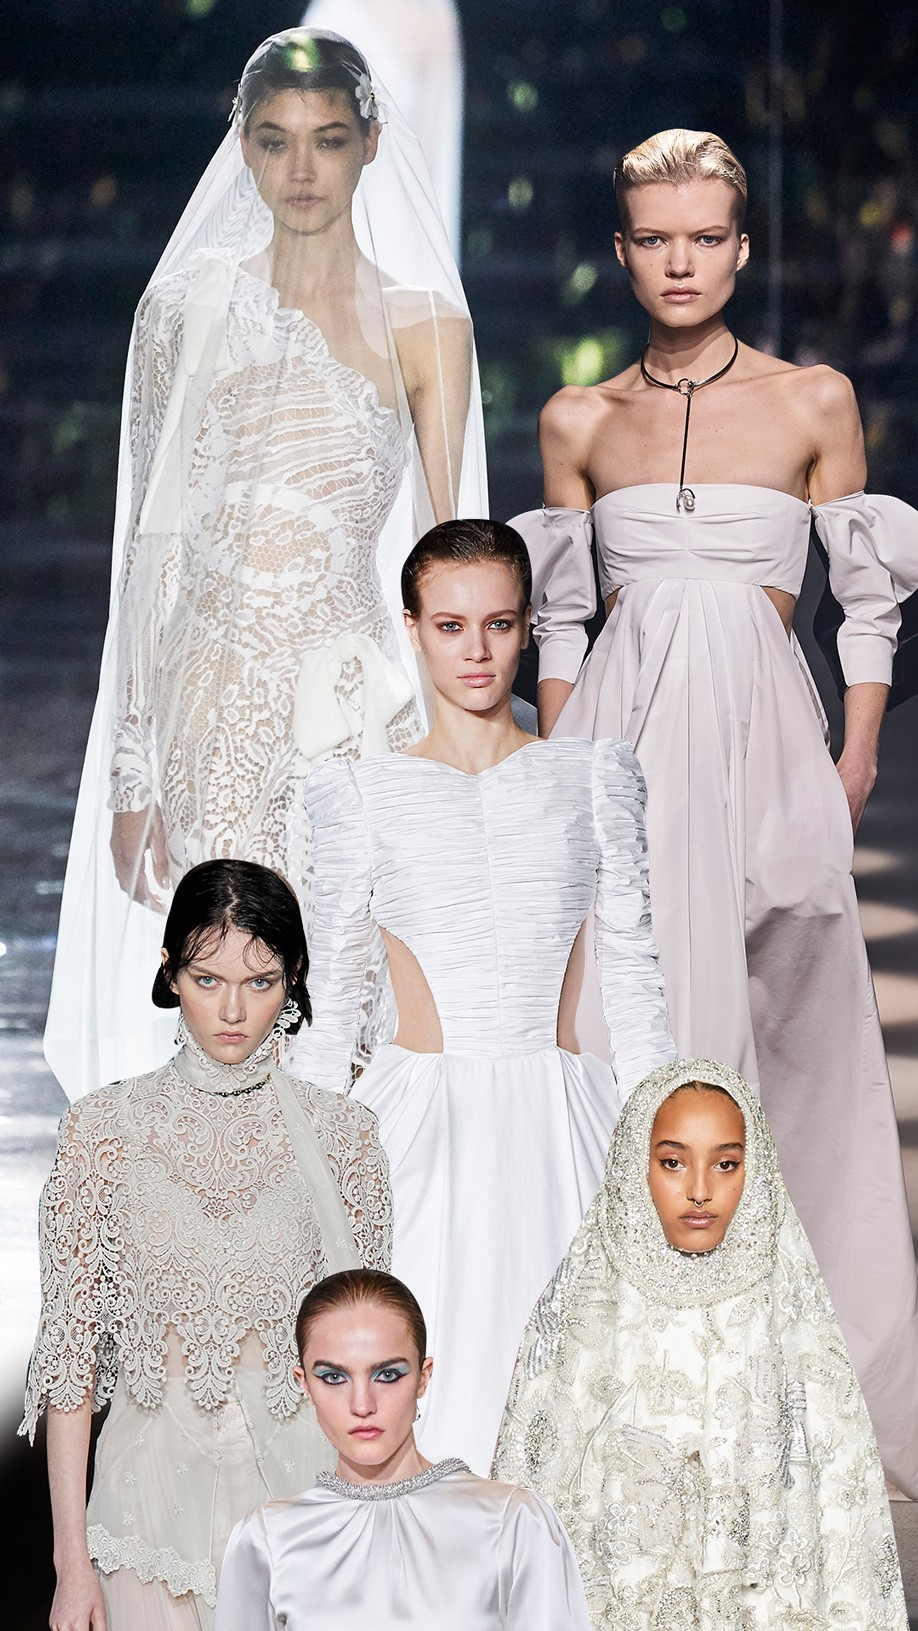 The Hottest And Most Coveted Fashion Trends From The Fall 2020 Runways (10) fashion trend The Hottest And Most Coveted Fashion Trends From The Fall 2020 Runways The Hottest And Most Coveted Fashion Trends From The Fall 2020 Runways 10